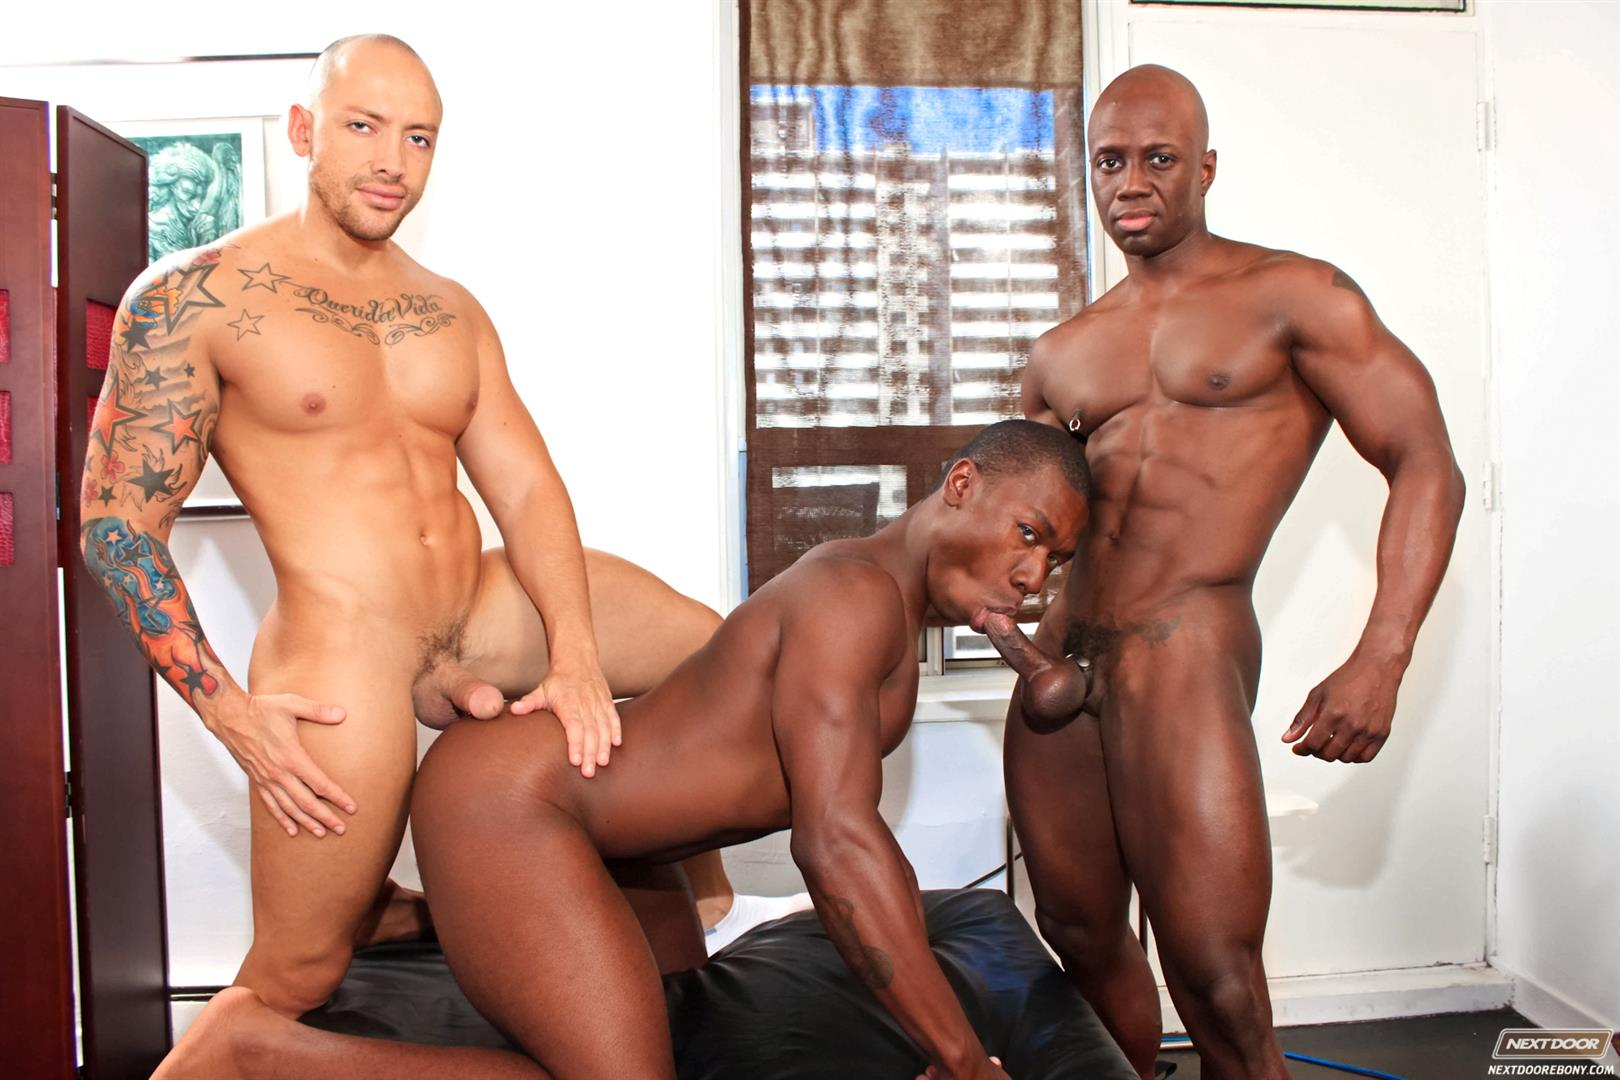 ebony porn gay Ebony porn - meaning and definition of word - MinuPorno.